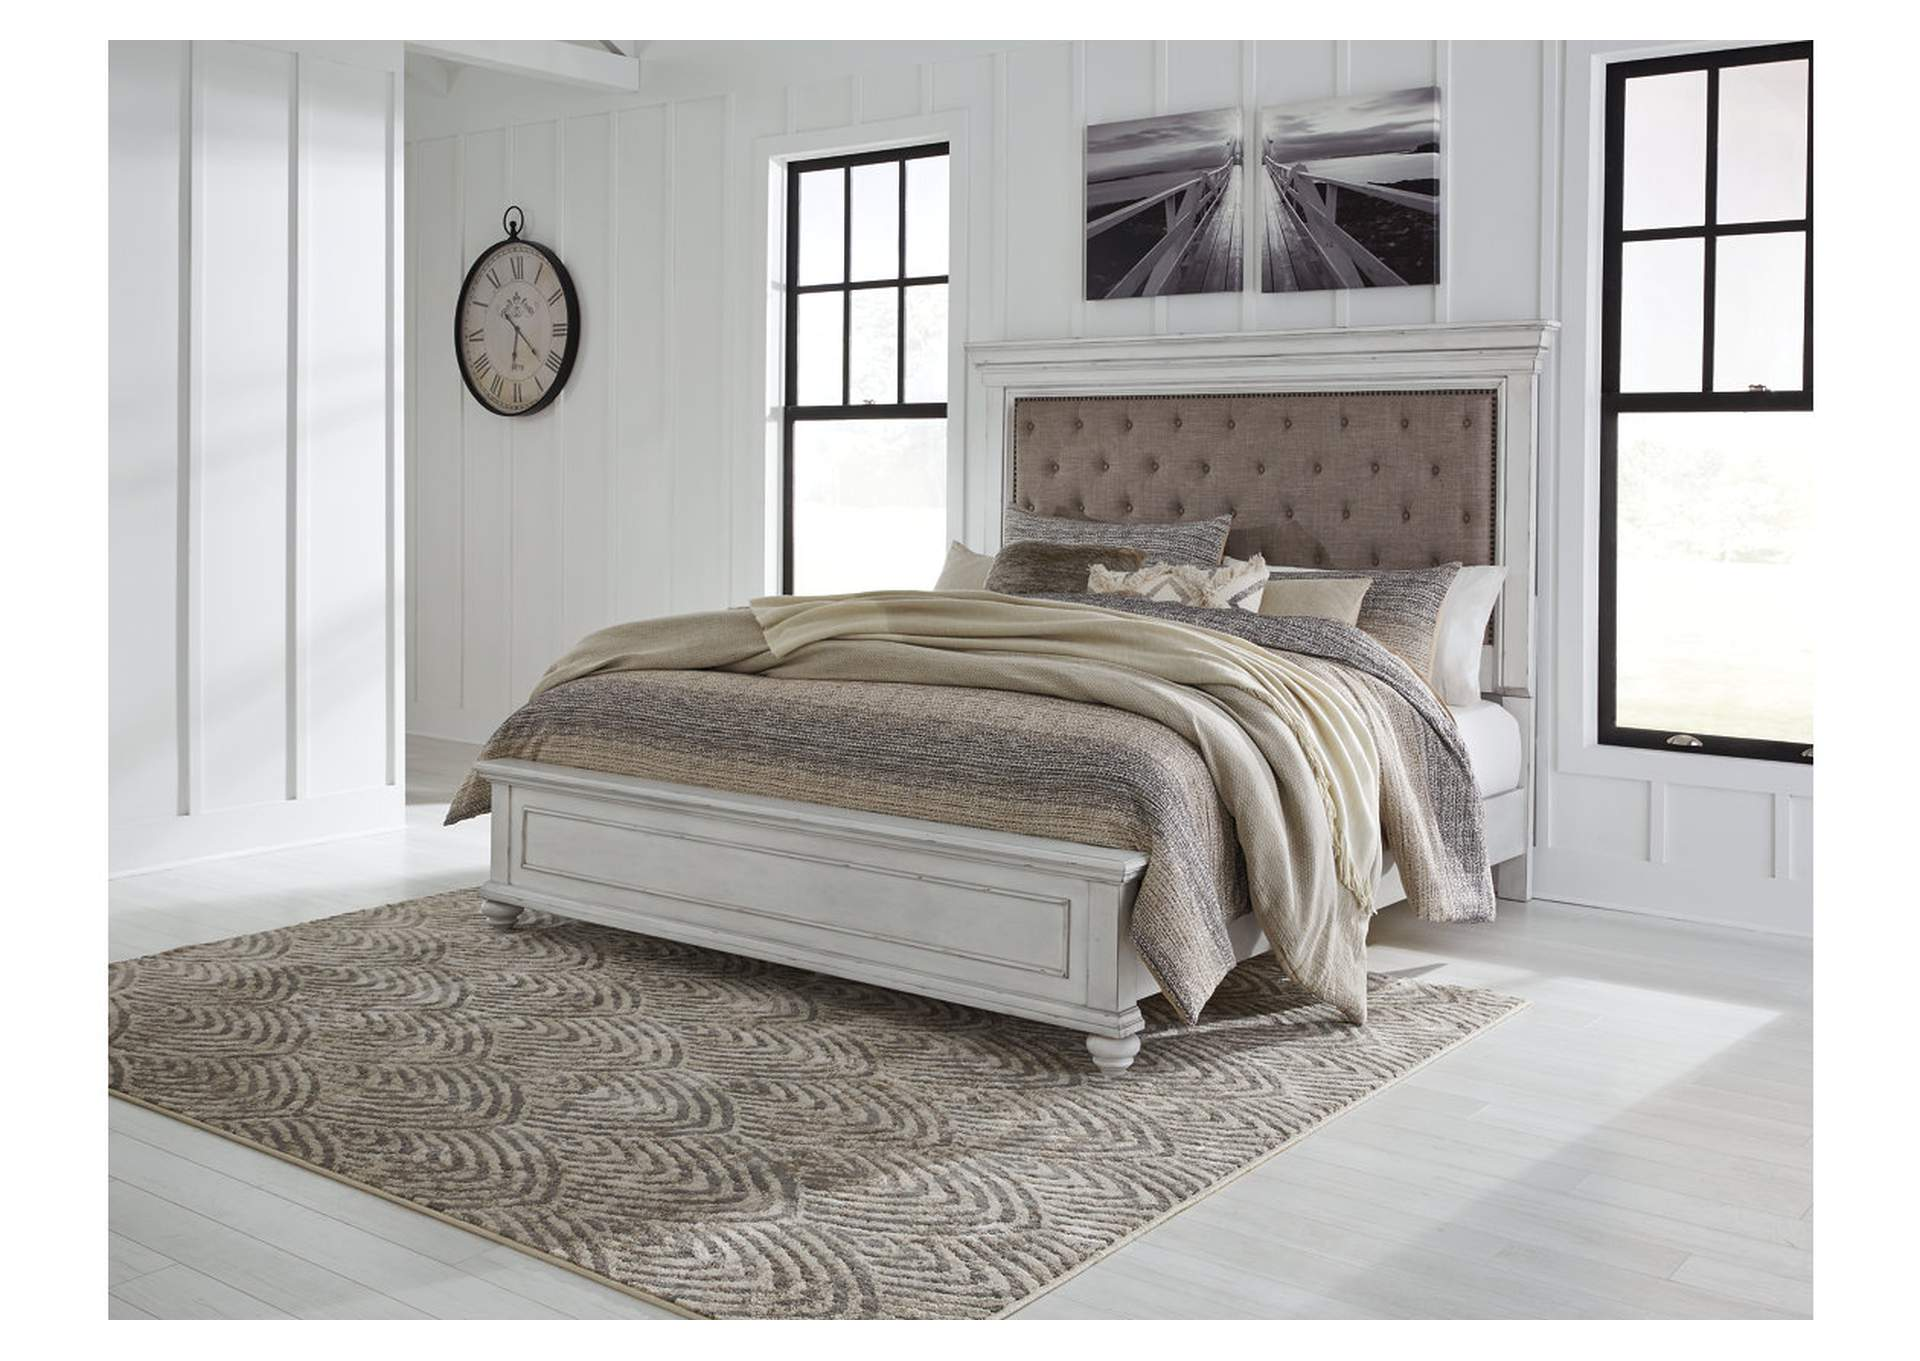 Kanwyn Whitewash California King Upholstered Panel Bed,Benchcraft